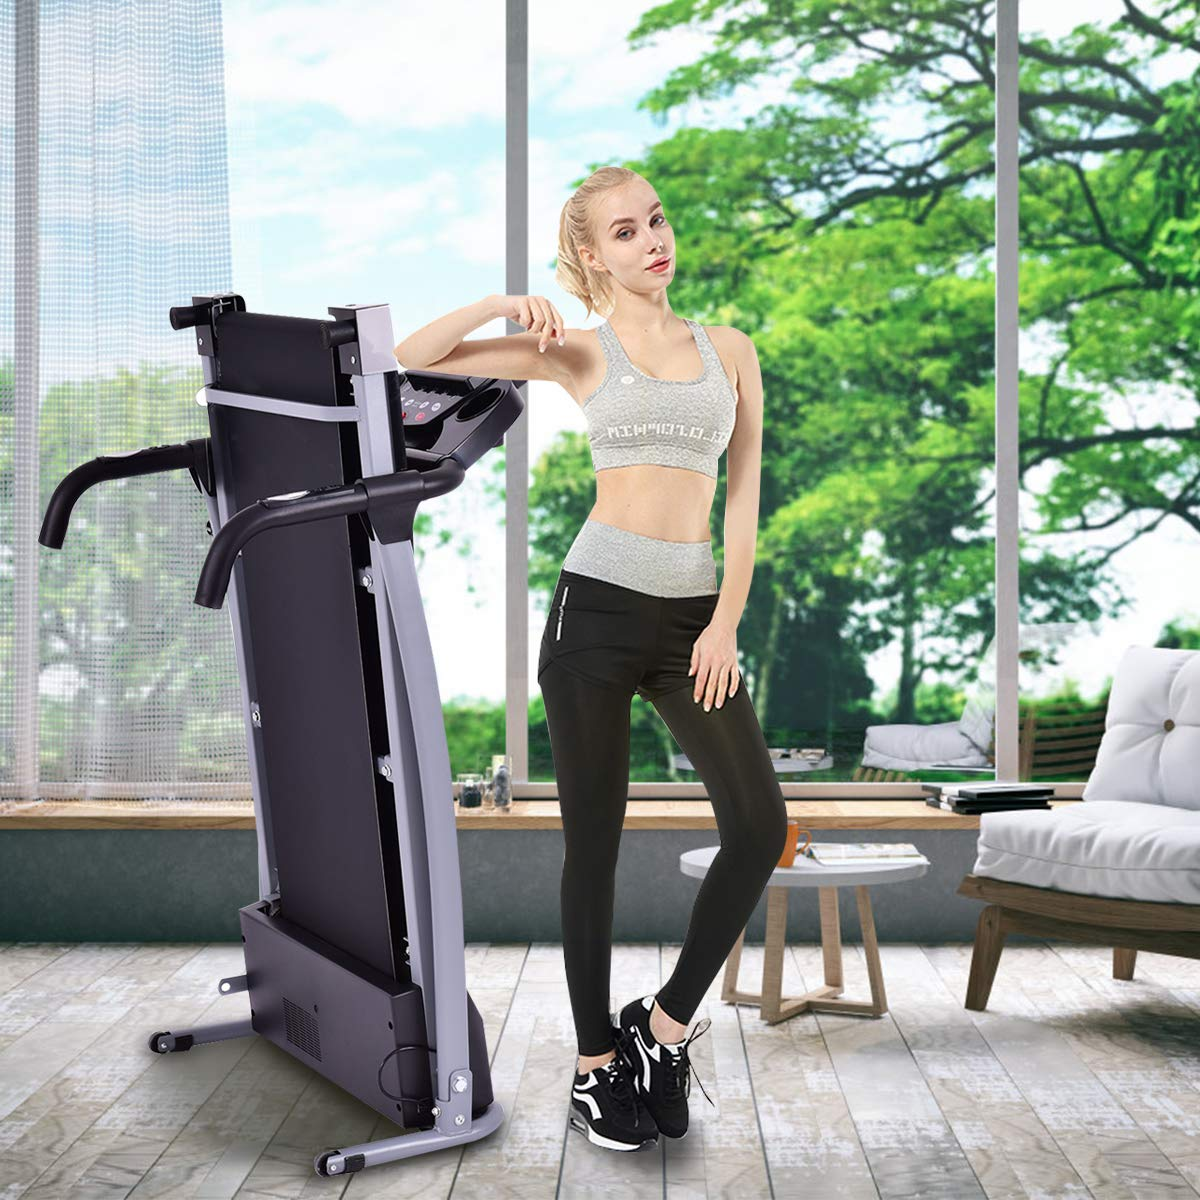 Goplus 800W Folding Treadmill Electric Motorized Power Fitness Running Machine with LED Display and Mobile Phone Holder Perfect for Home Use (Black) by Goplus (Image #9)